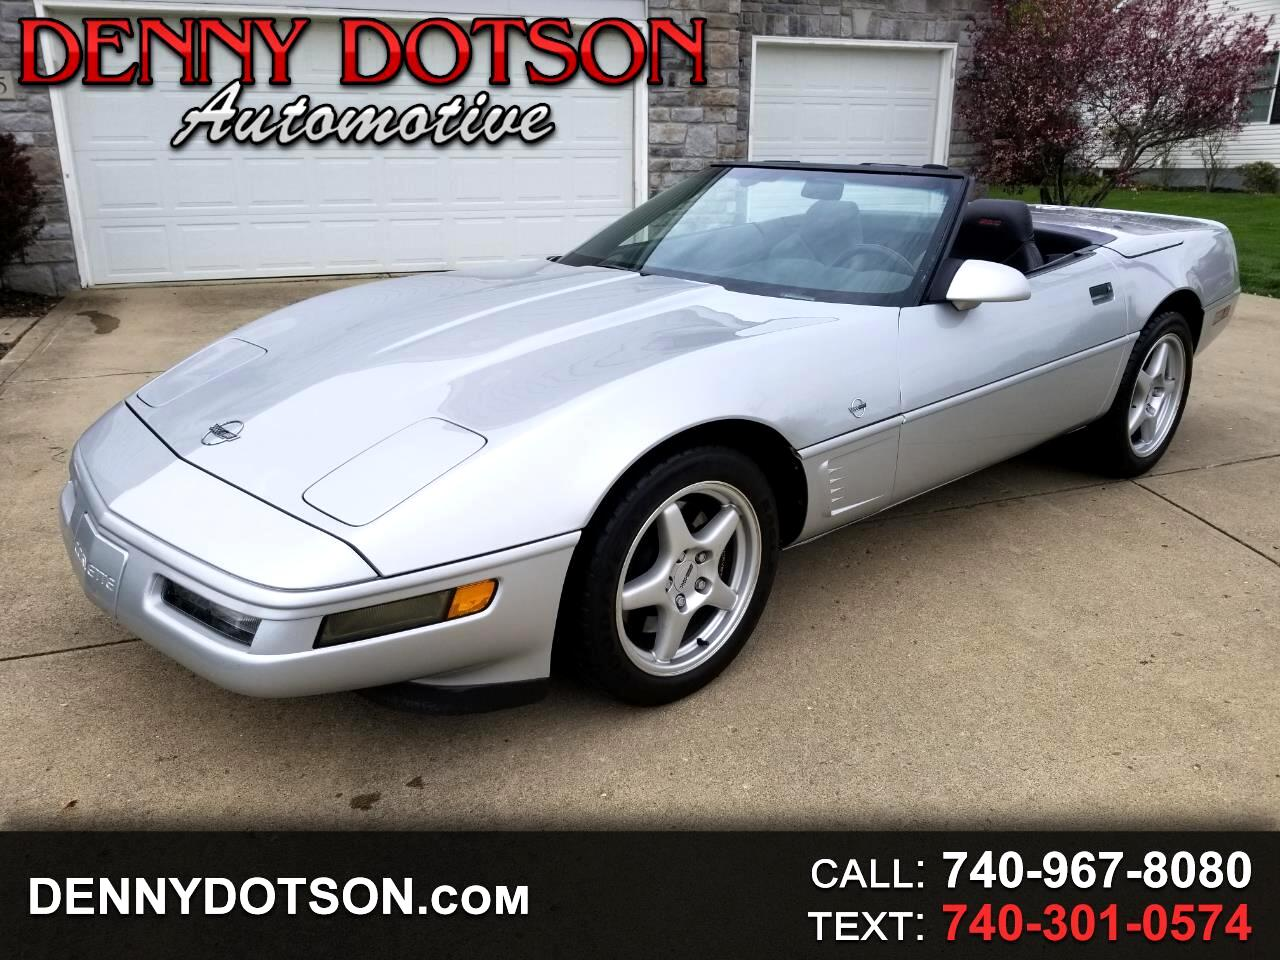 1996 Chevrolet Corvette 2dr Convertible